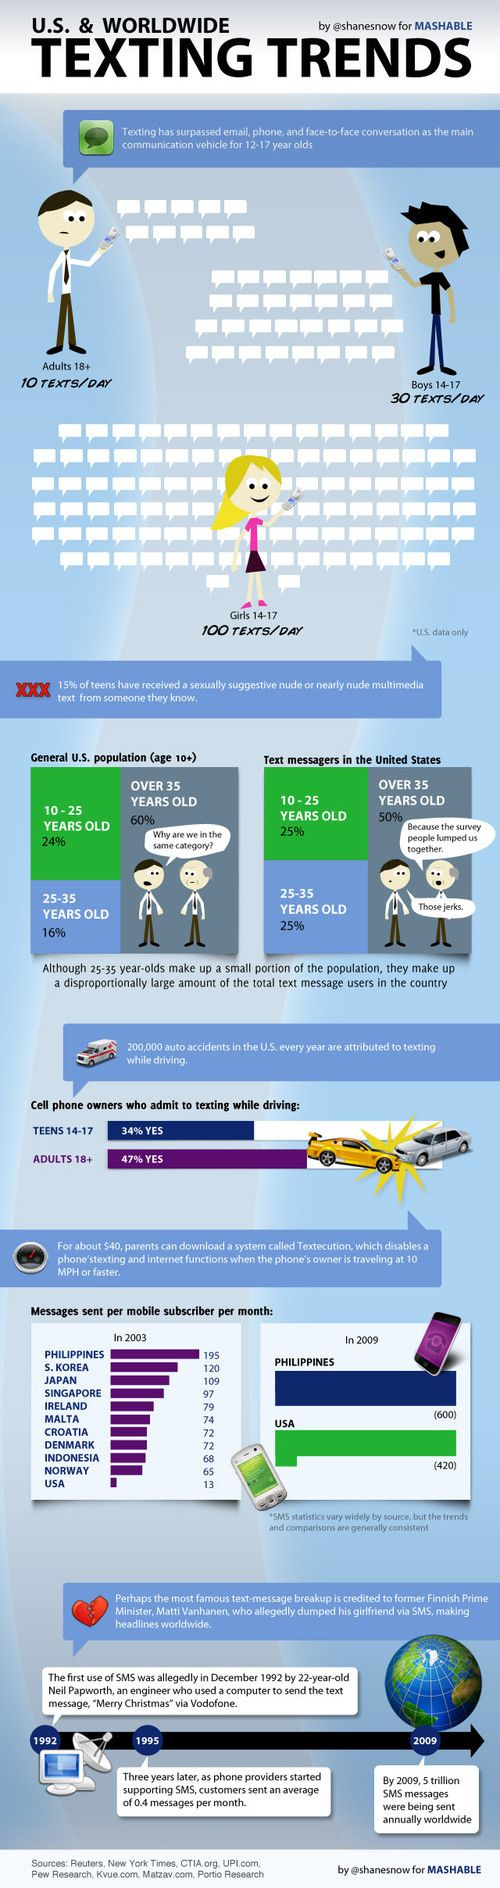 Texting Trends